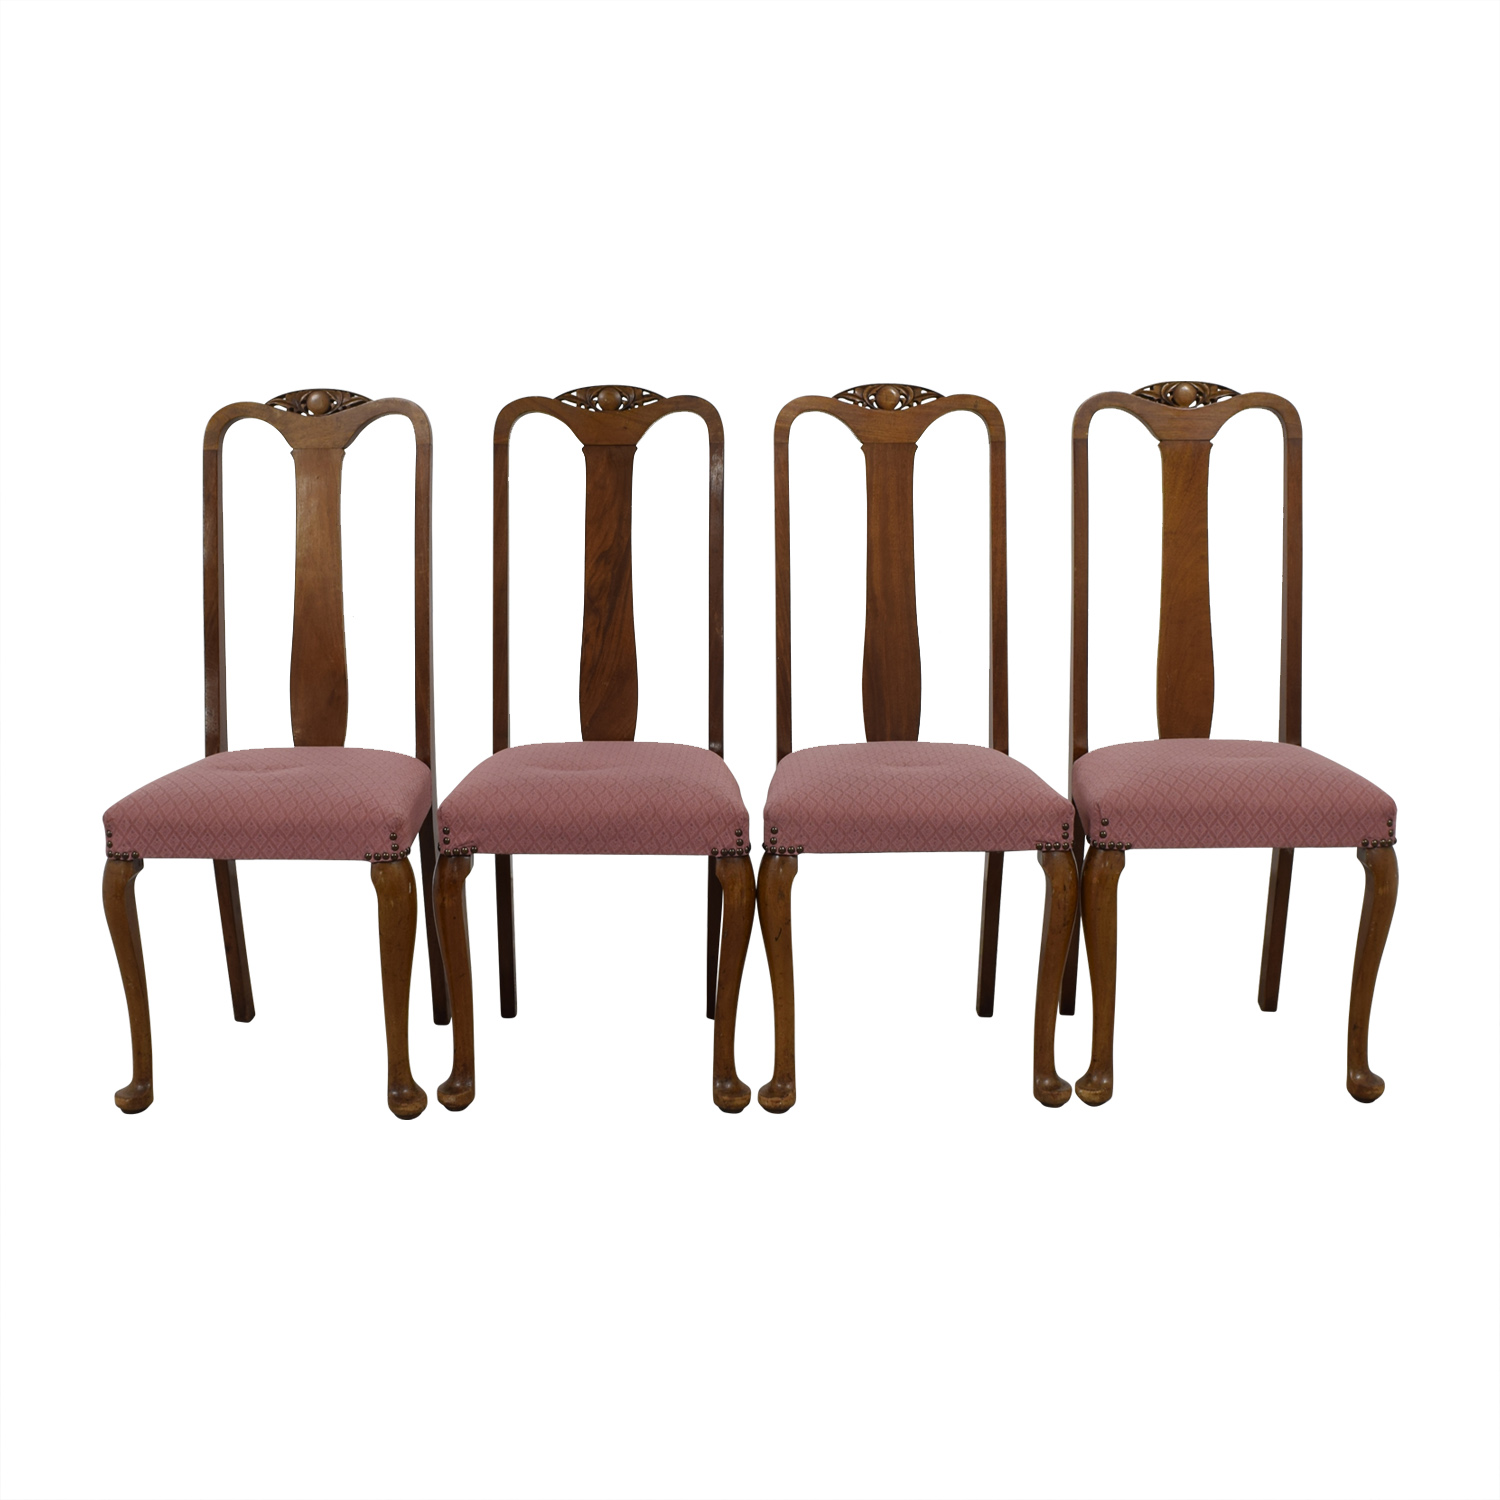 Antique Wood and Pink Upholstered Chairs nj